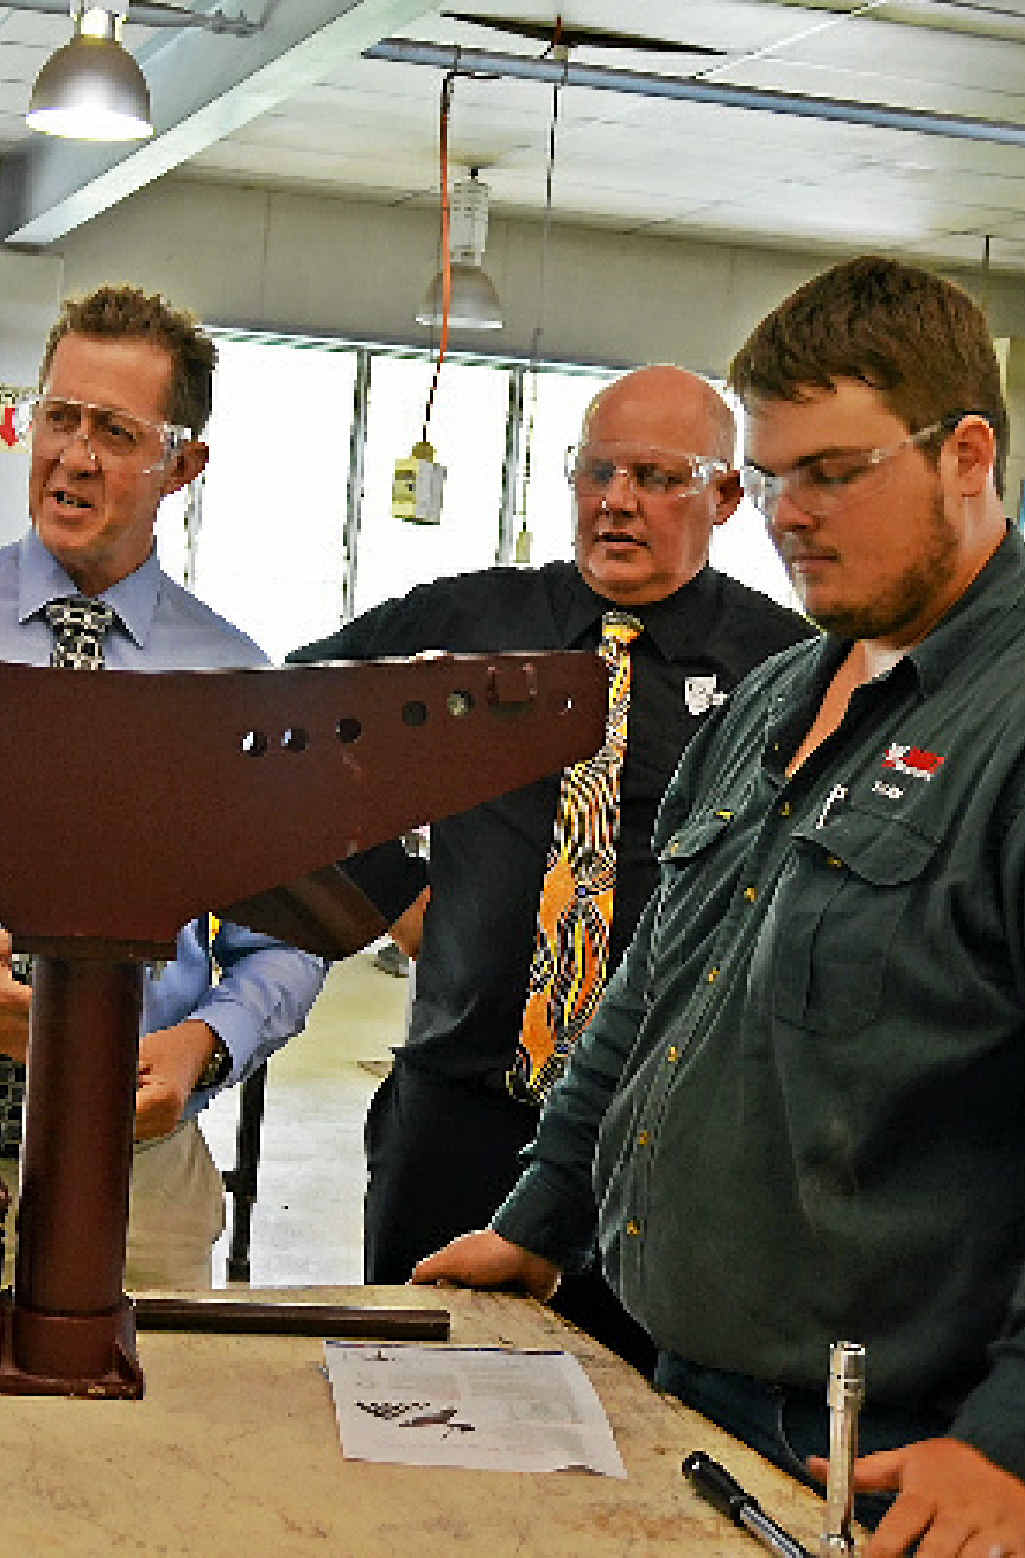 TAFE VISIT: Vocational education minister Luke Hartsuyker (left) and CQUni vice chancellor Scott Bowman inspect a metal fabrication project with apprentice Ryan Young.